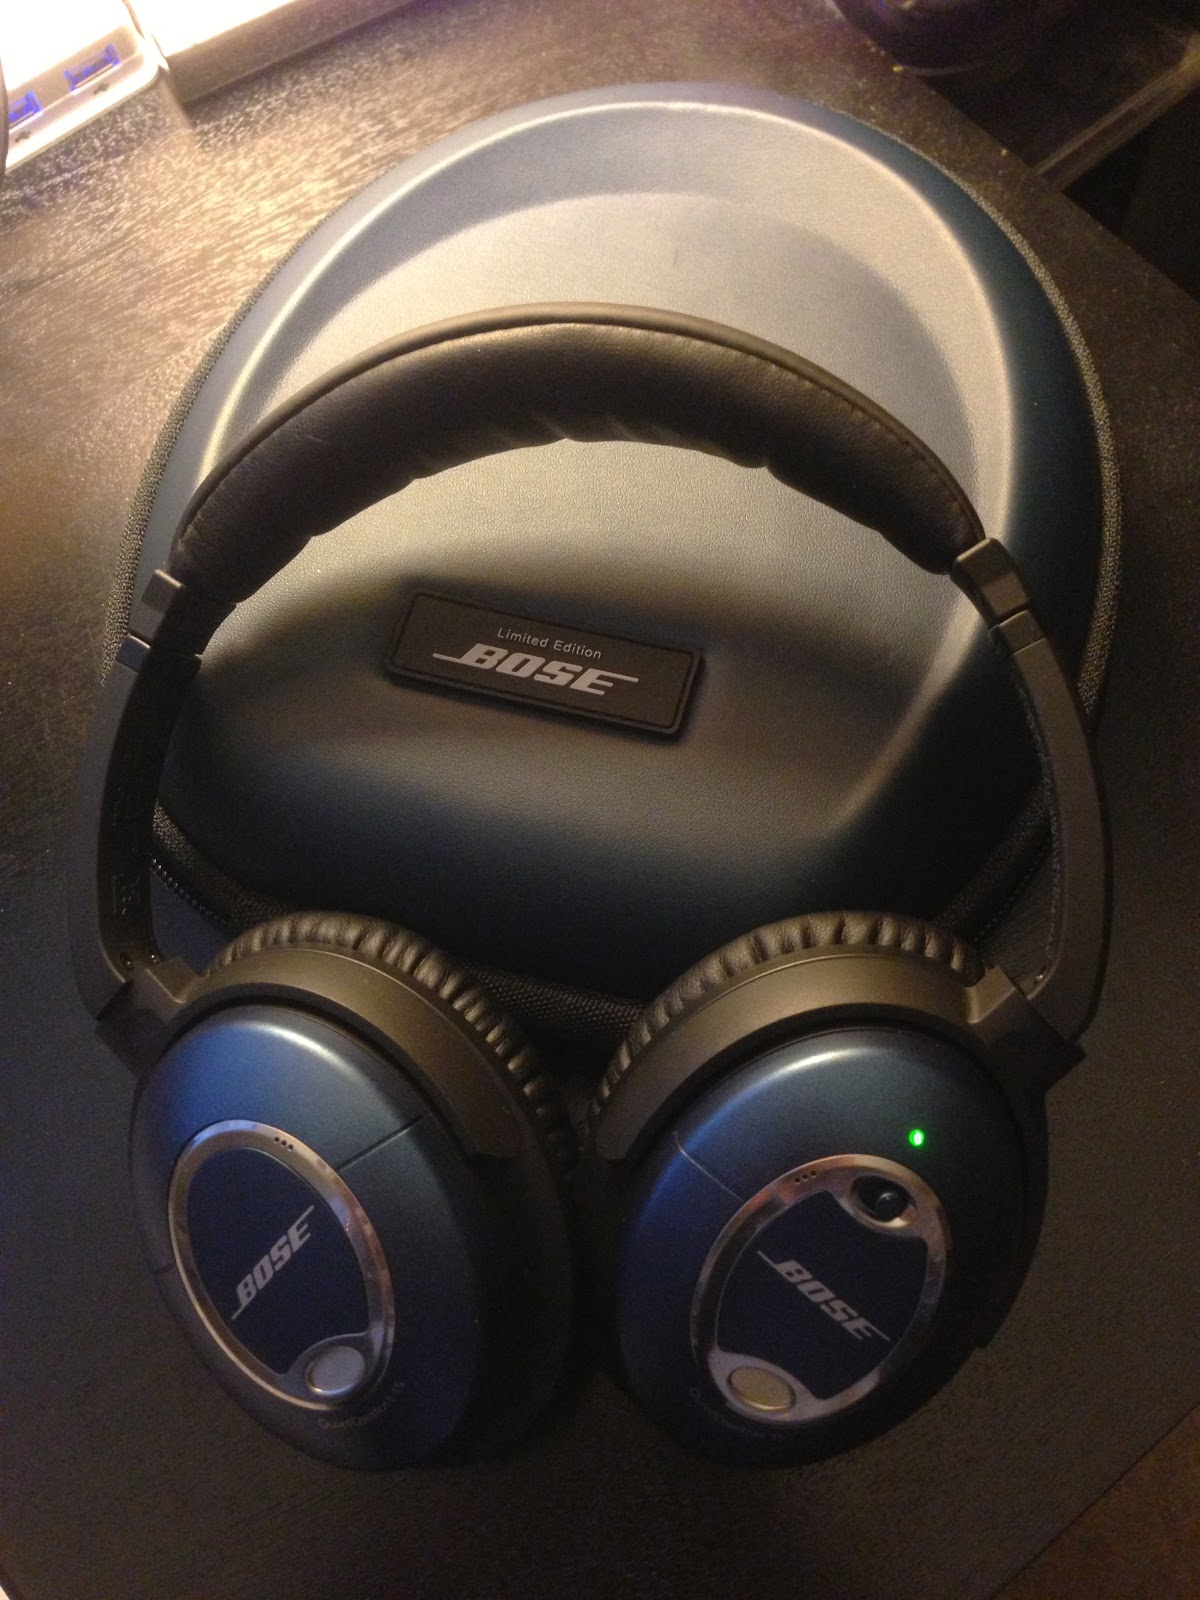 Bose Headphones Limited Edition Blue The Limited Edition Has a Blue